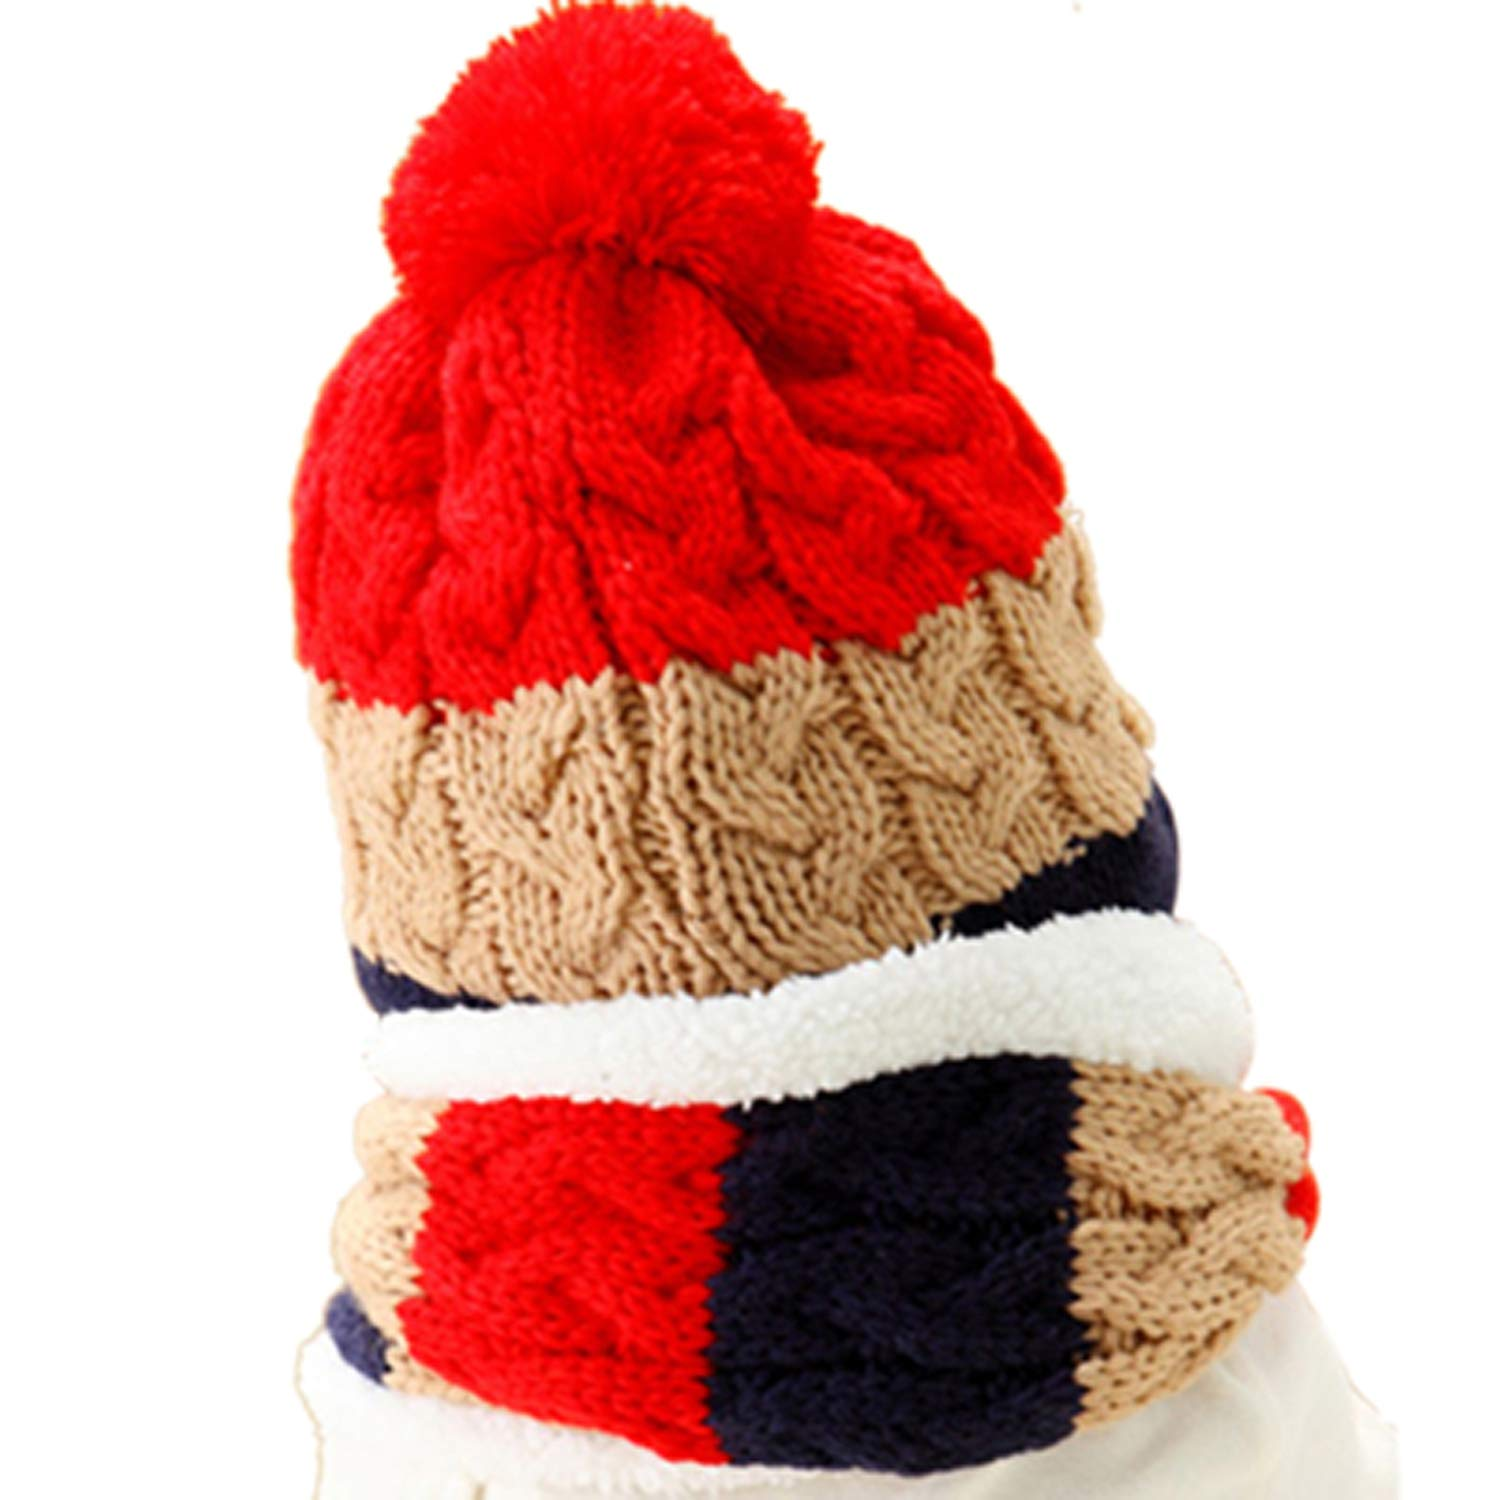 Baby Winter Hat and Scarf Set Very Warm Infant Beanie Cap for Children Boys Girl